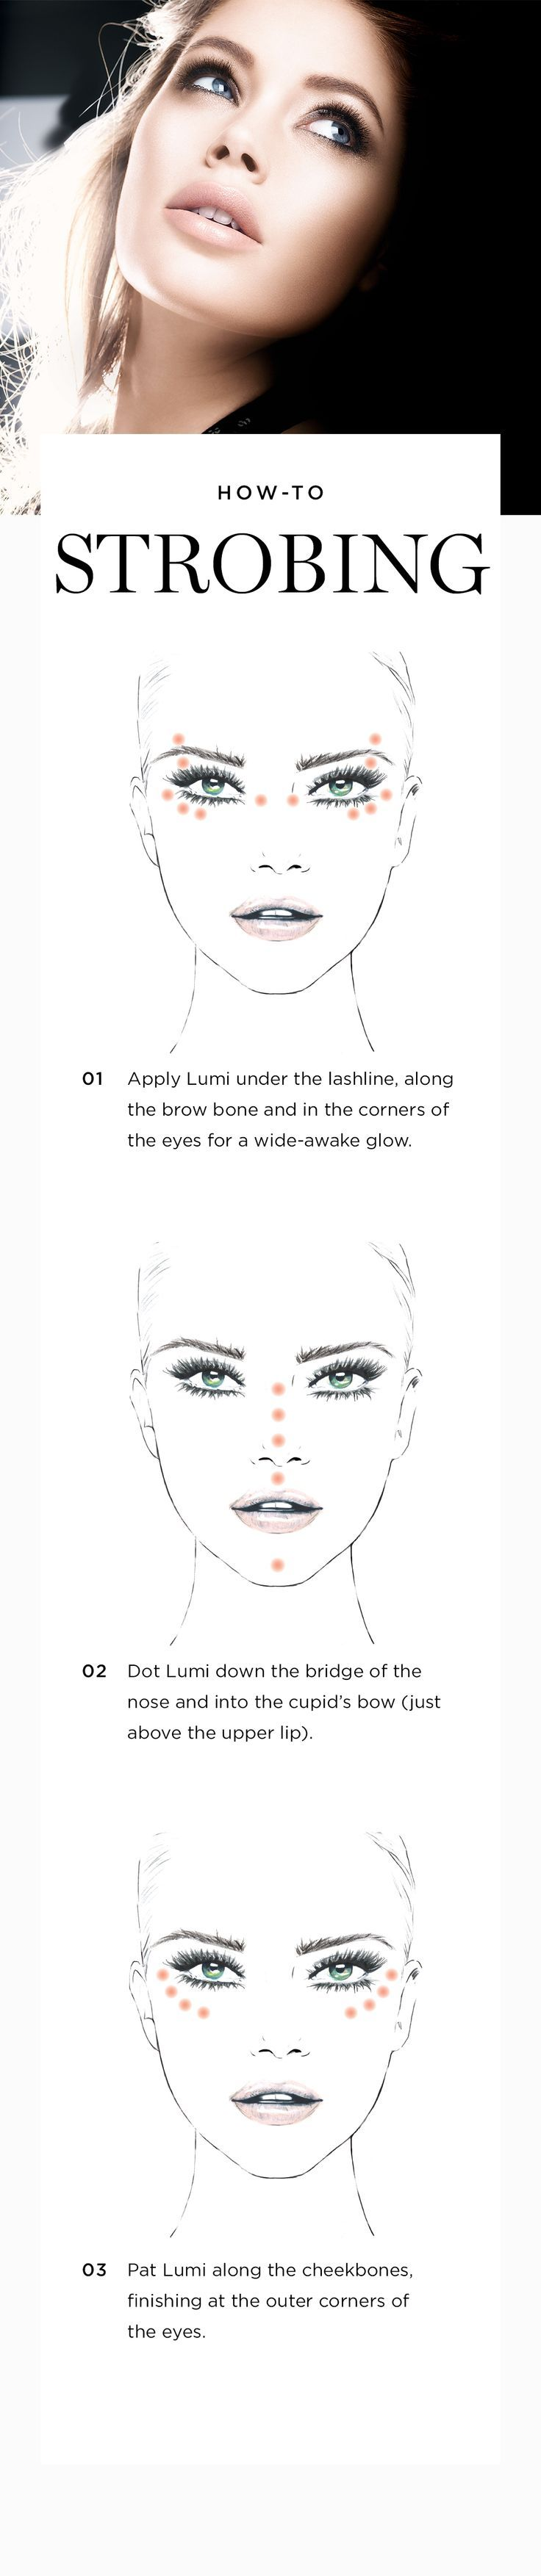 """""""Strobing"""" is the new contouring. To illuminate features for a glowy look, dot True Match Lumi Highlighter along cheekbones, down the bridge of the nose, below the brow bone and in the corners of the eyes. Blend with your fingers or dab with a sponge. 